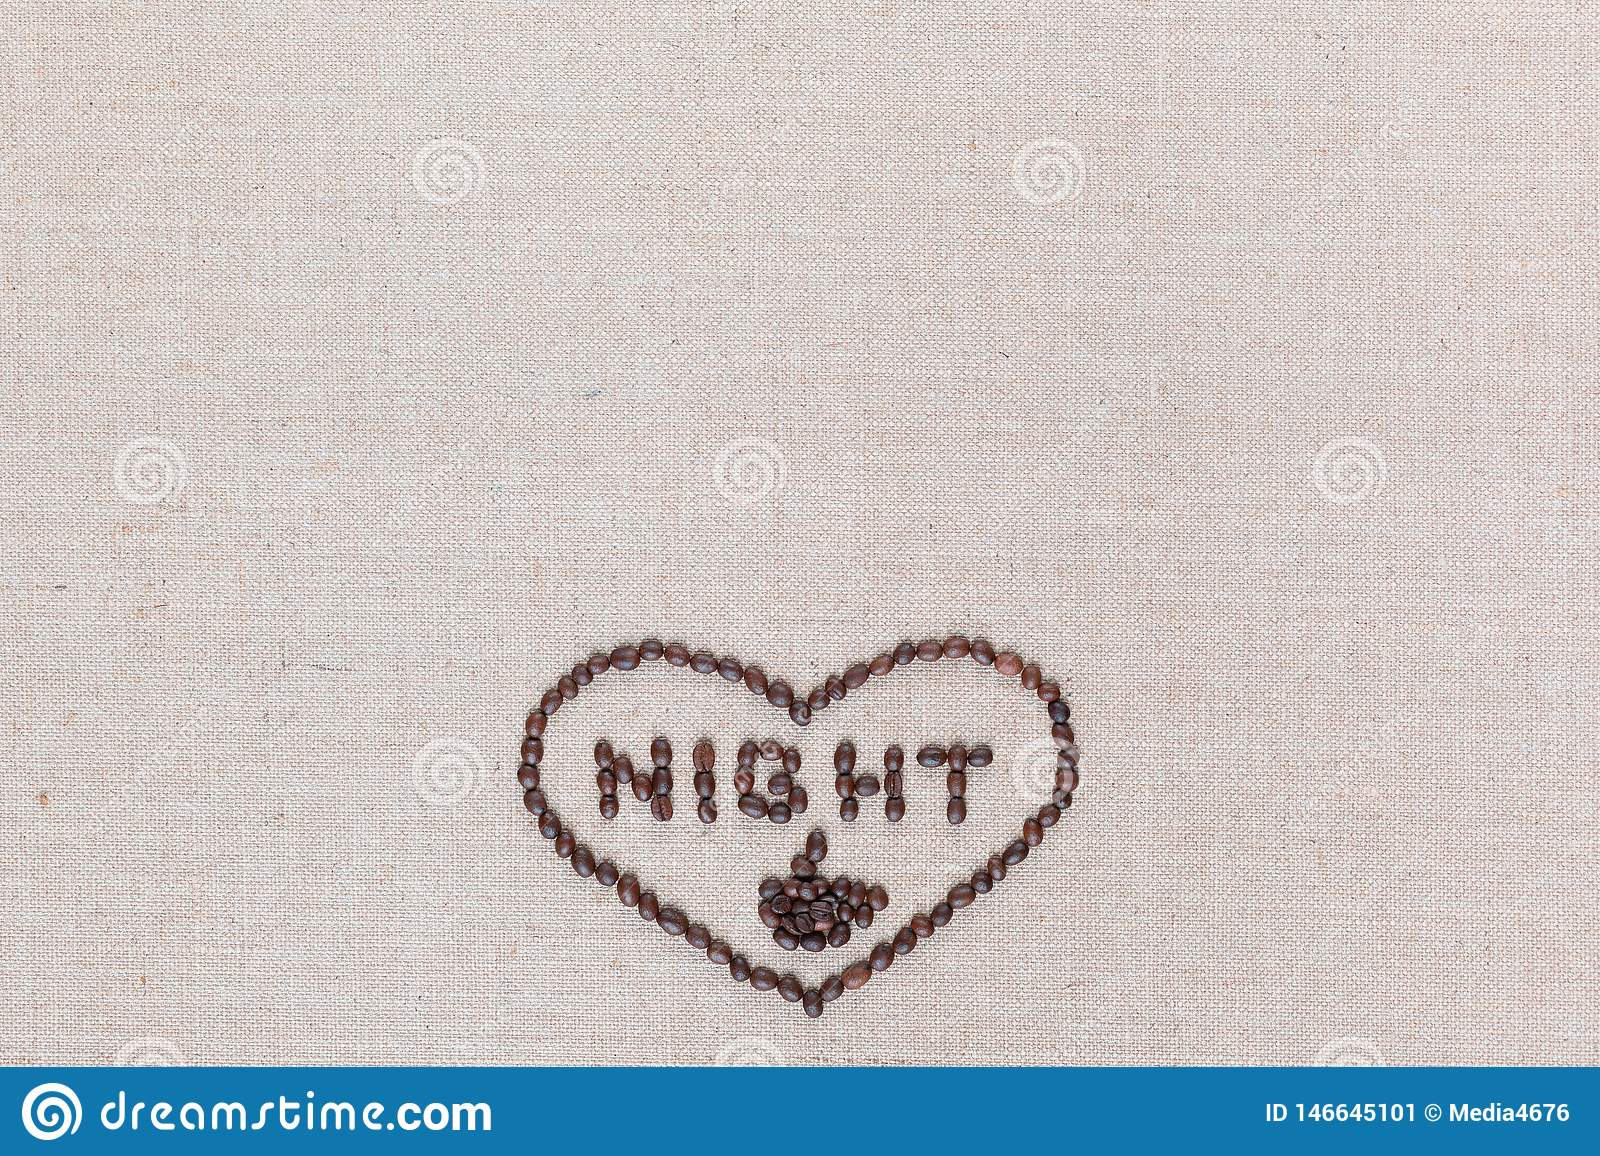 Night in heart sign from coffee beans isolated on linea texture, aligned bottom center